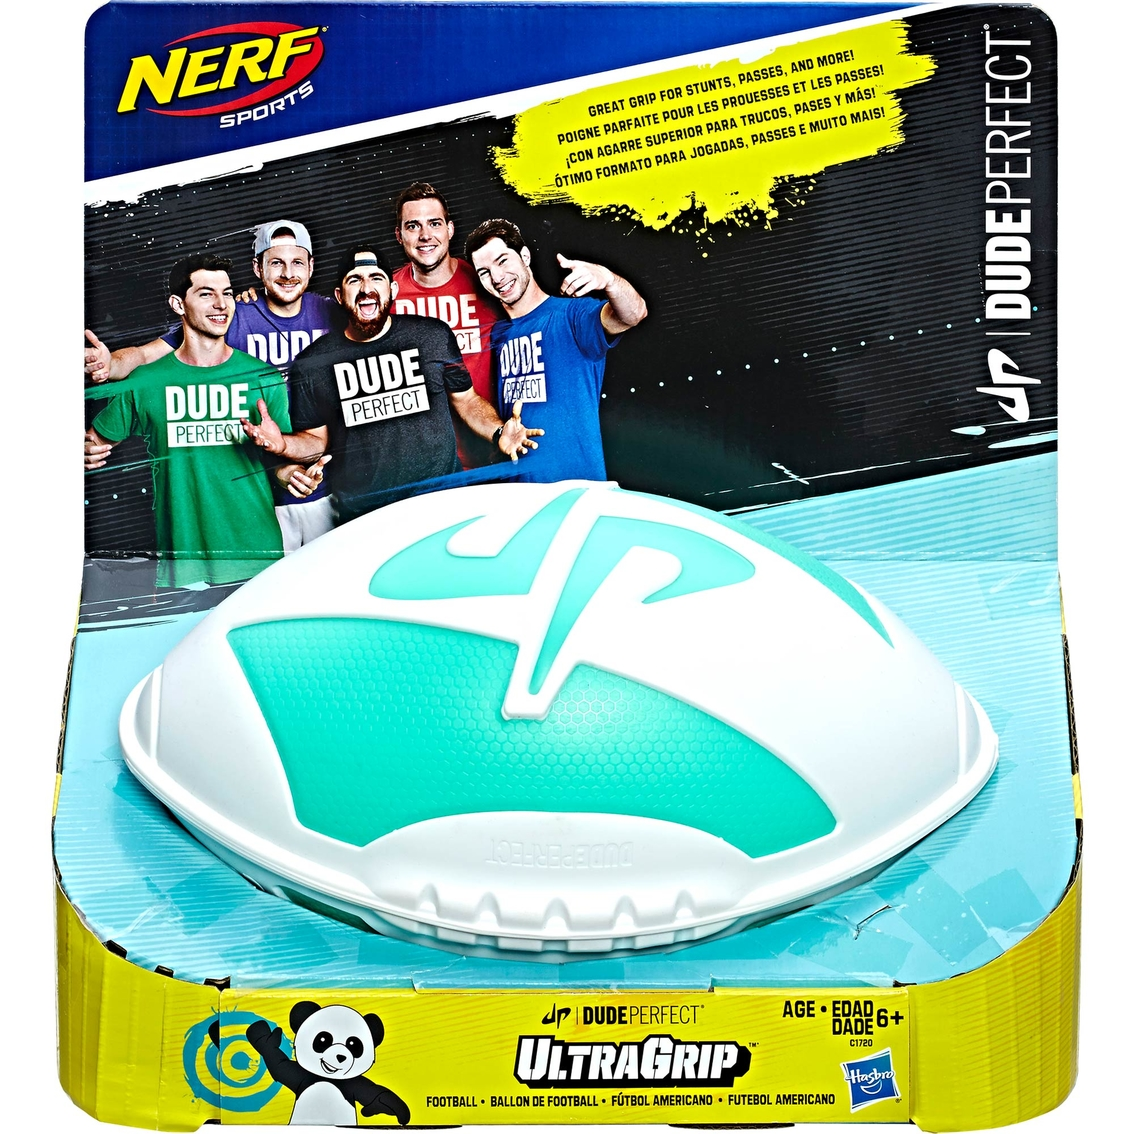 nerf sports dude perfect ultragrip football toy blasters nerf